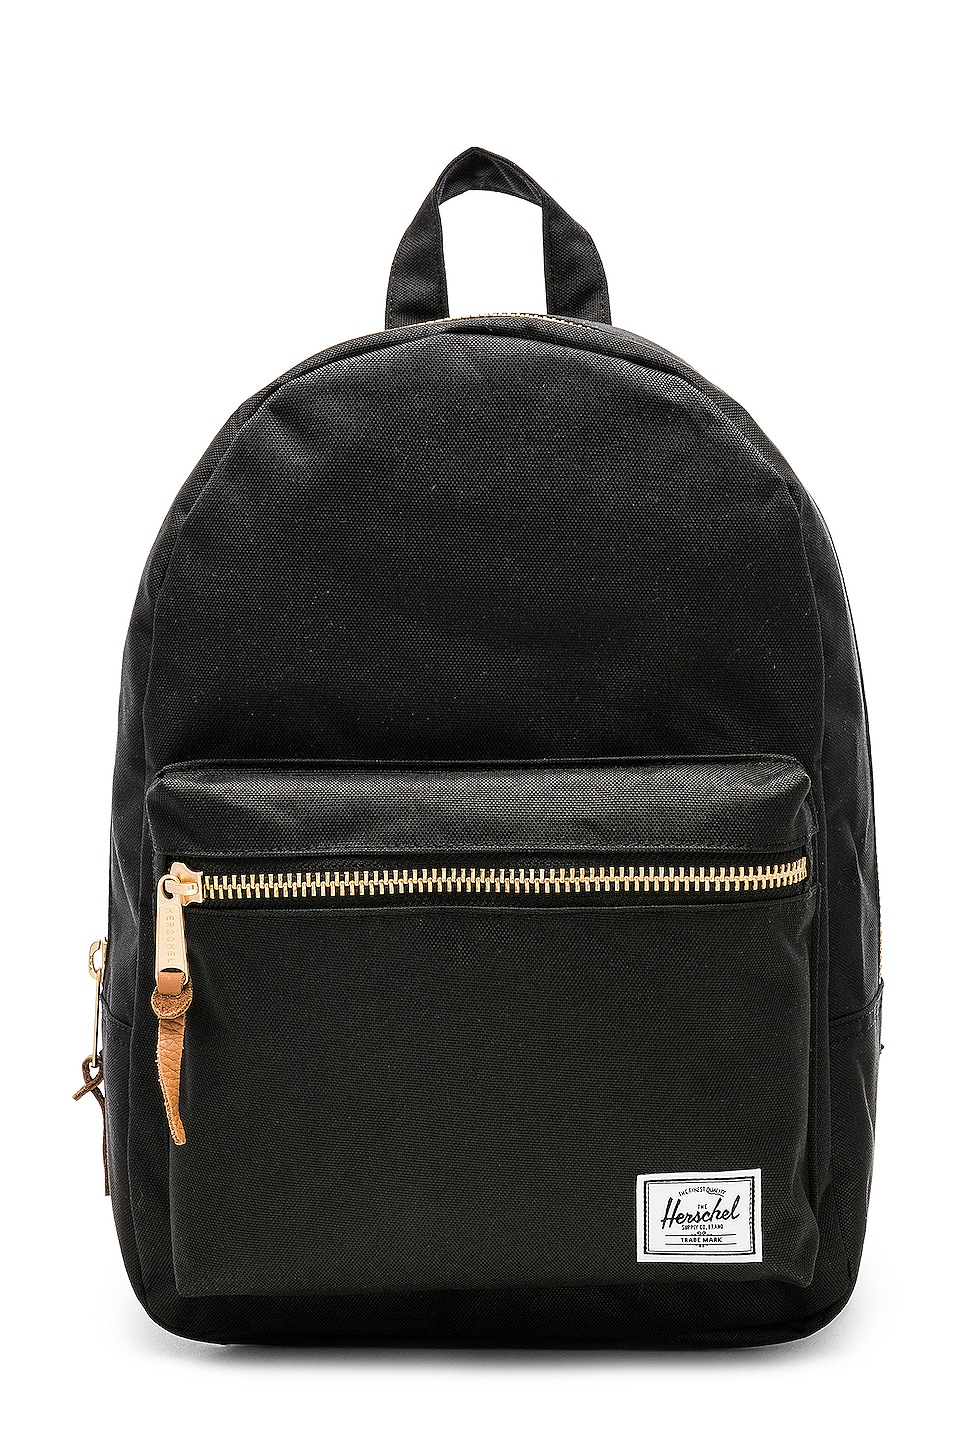 Herschel Supply Co. Grove Small Backpack in Black